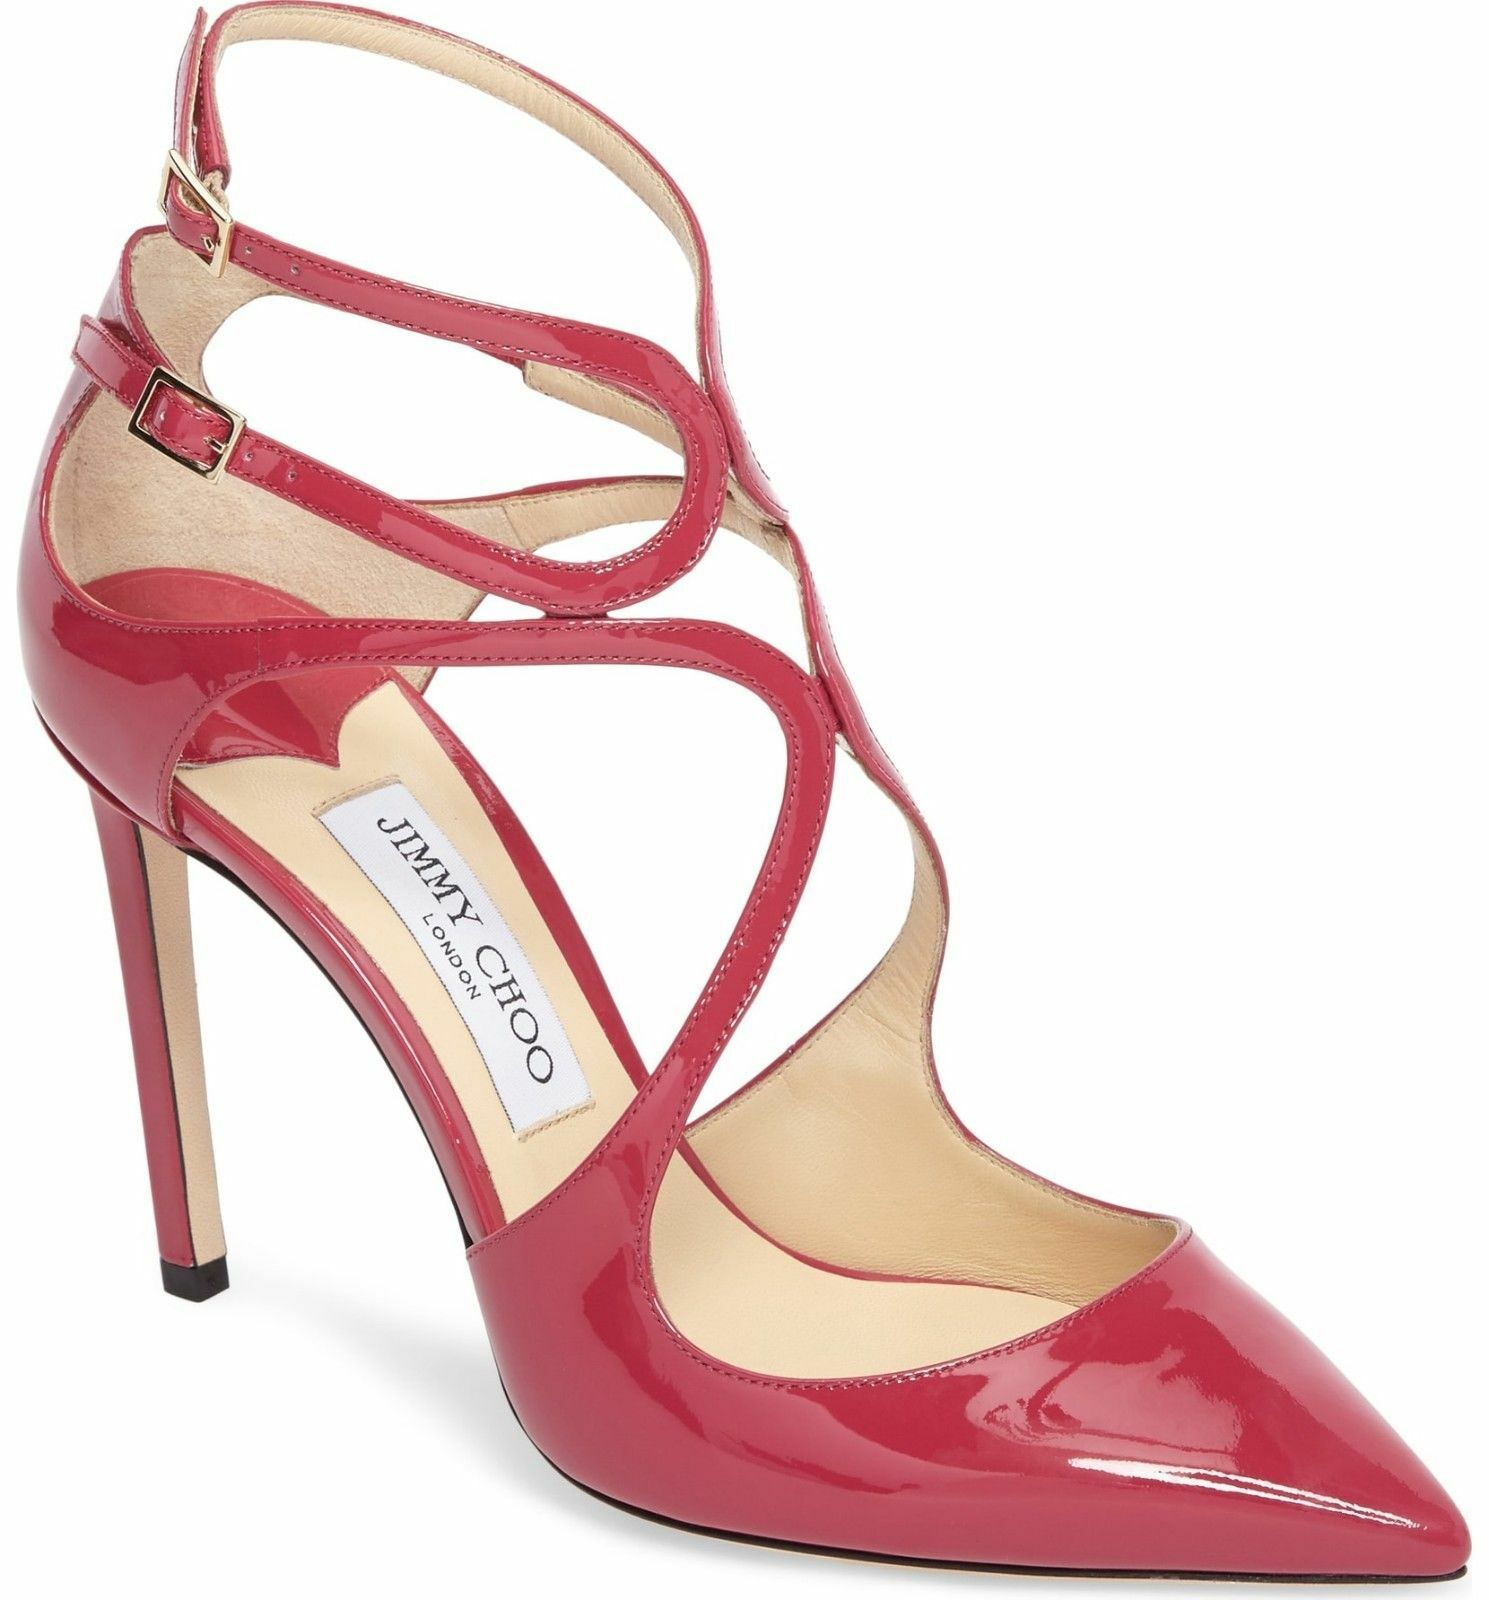 Jimmy Choo Lancer Strappy Pumps Heels CERISE PINK Patent Leather Shoes  37